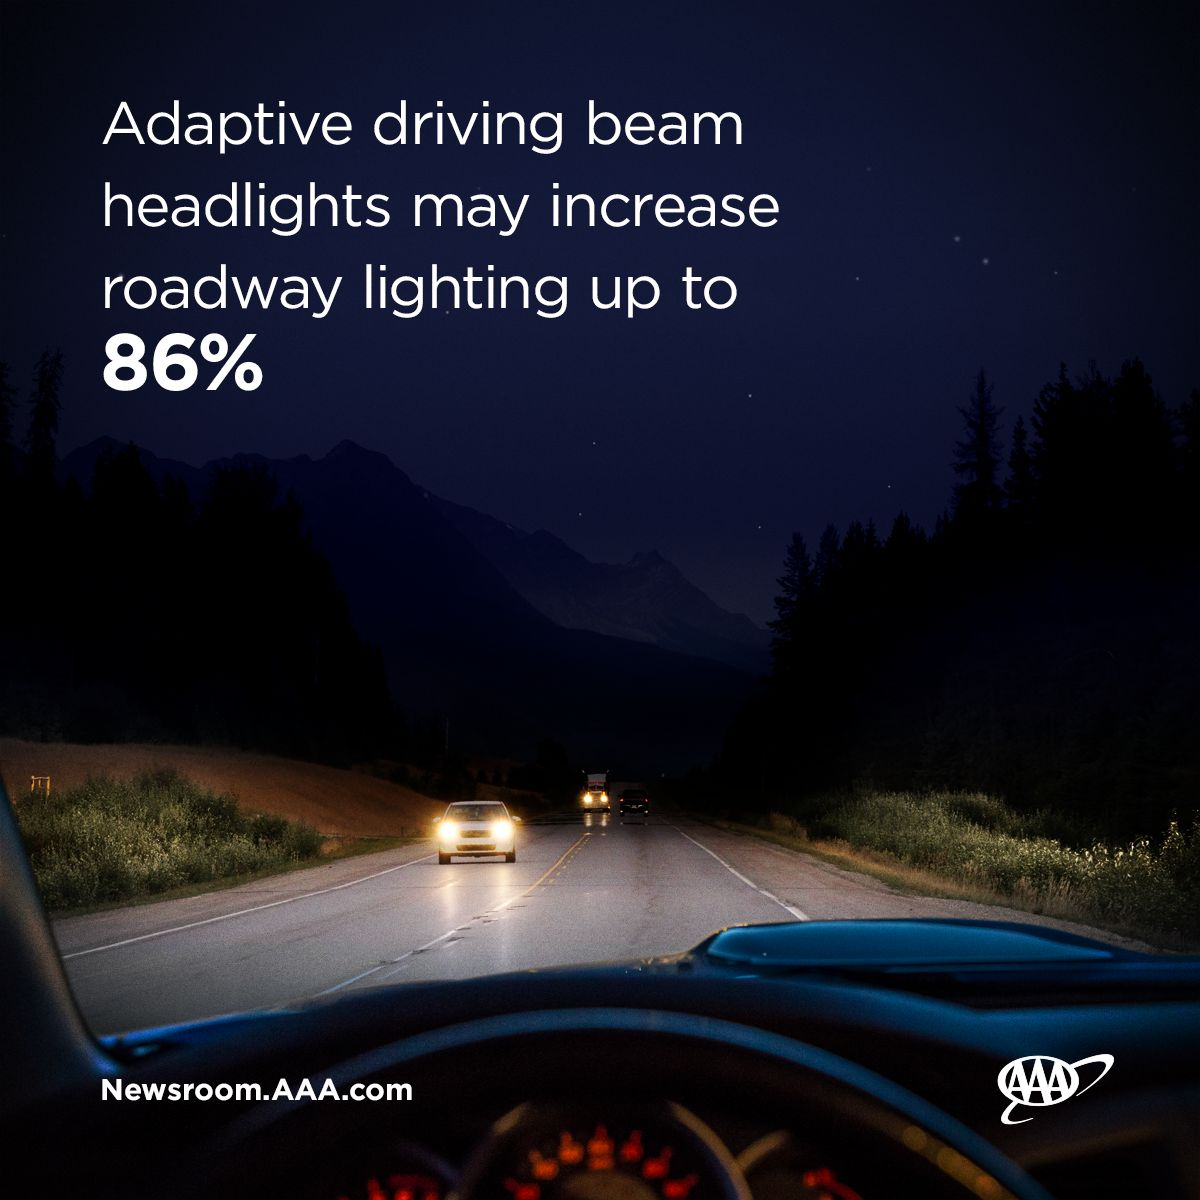 19-0135_AUTO_Headlight-Research_lighting_201904161325